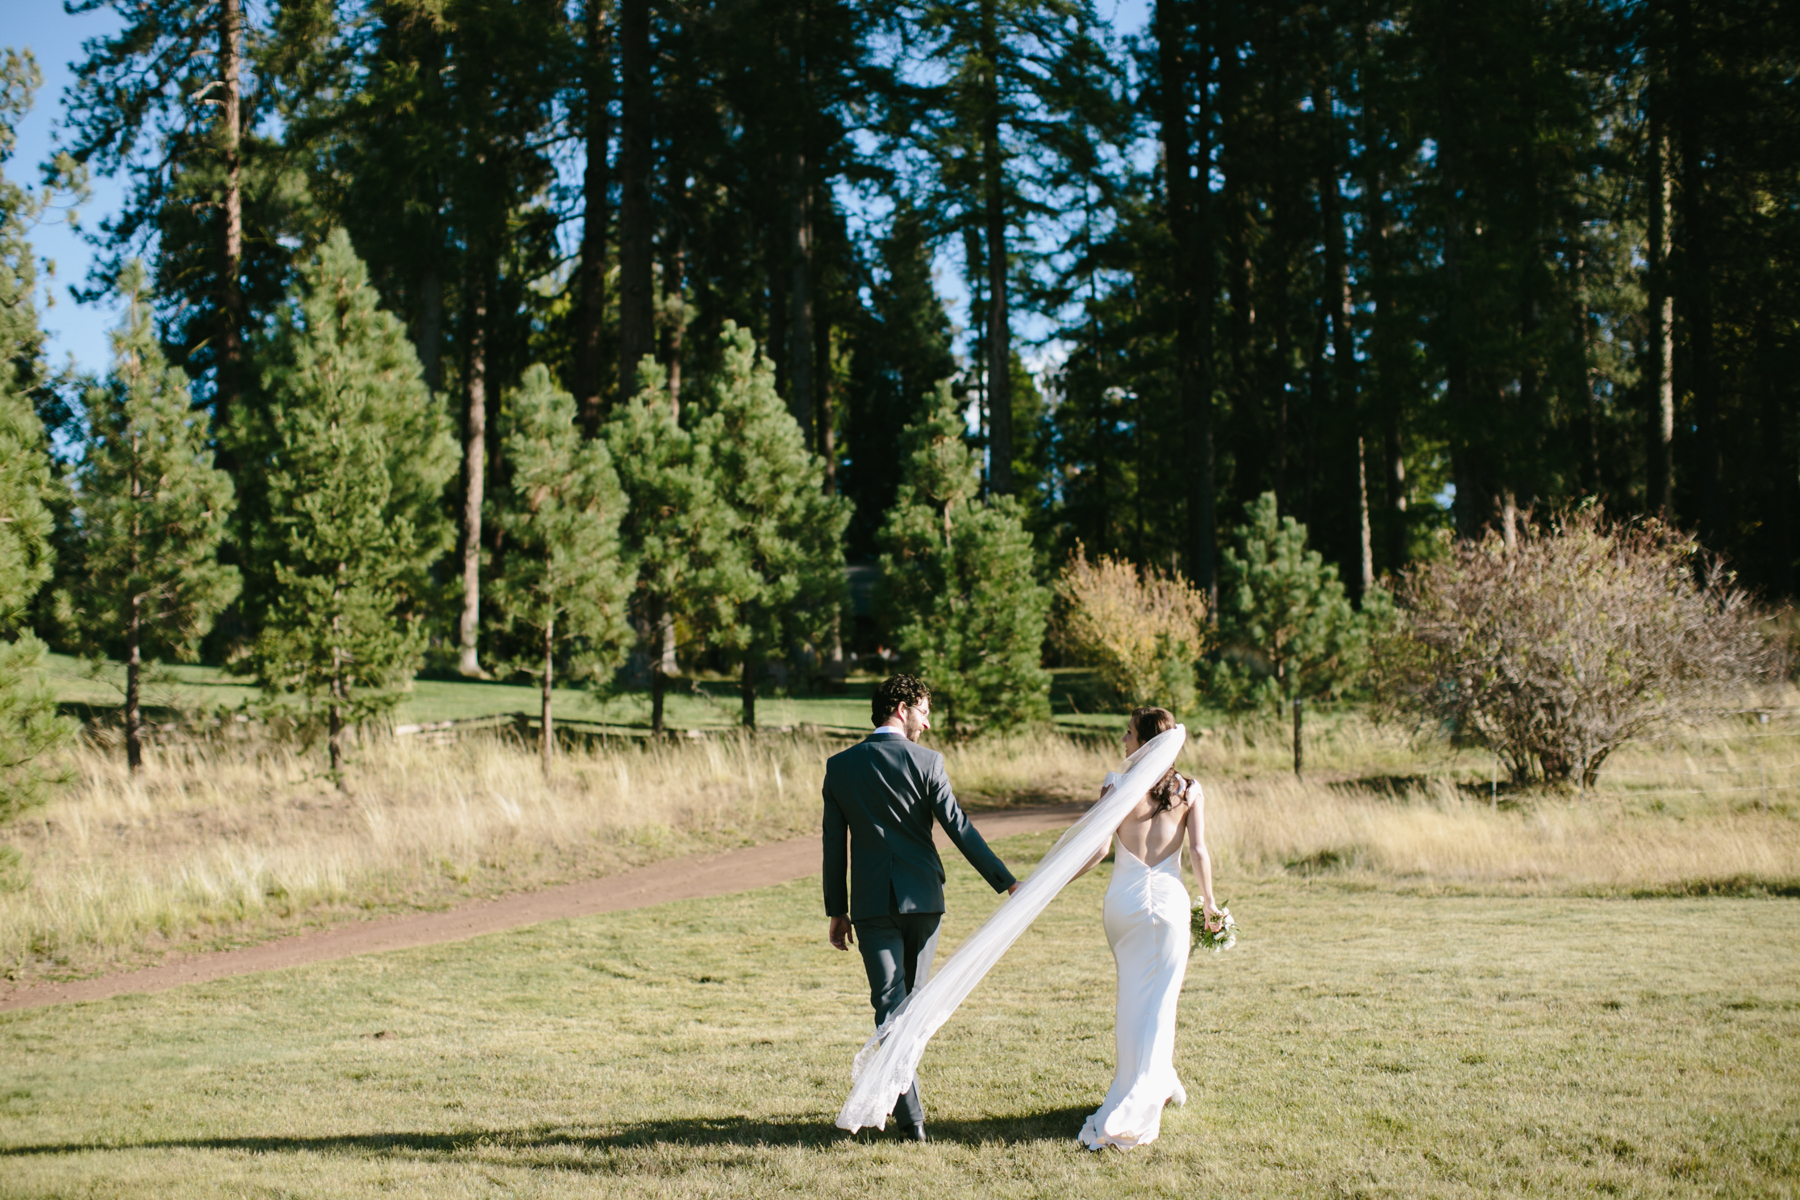 houseonmetoliuswedding-661.jpg